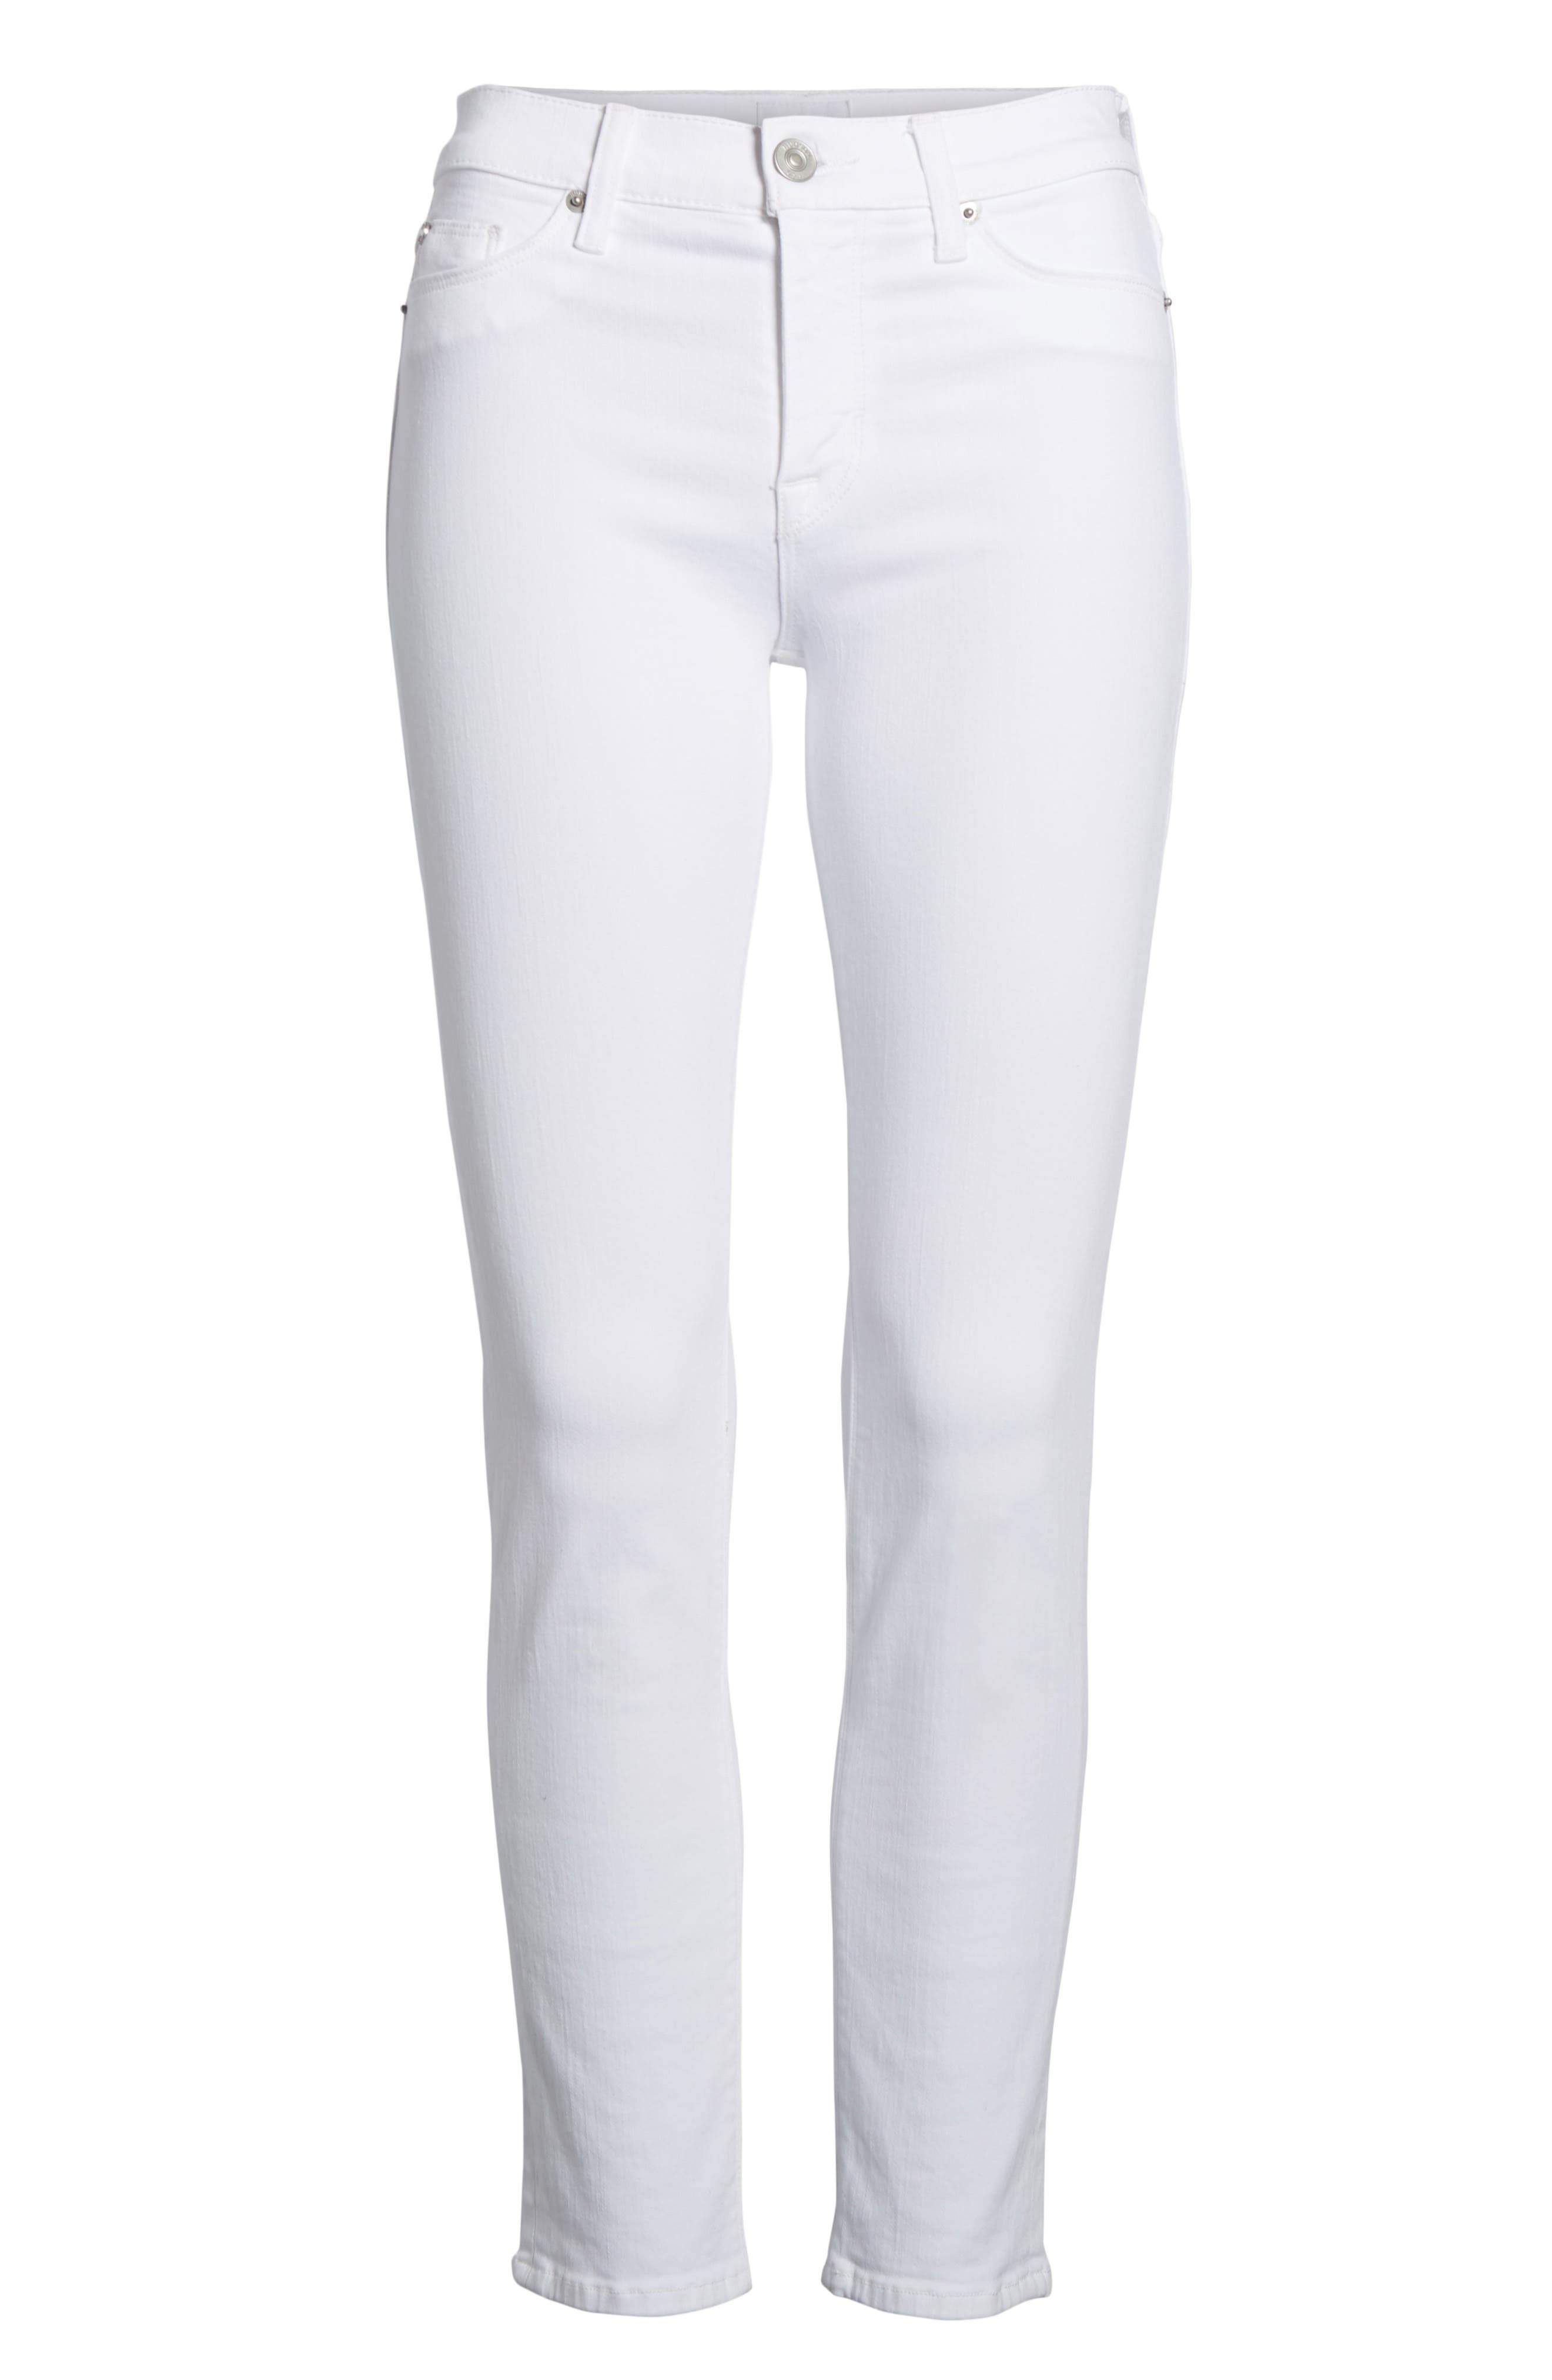 Tally Ankle Skinny Jeans,                             Alternate thumbnail 7, color,                             110